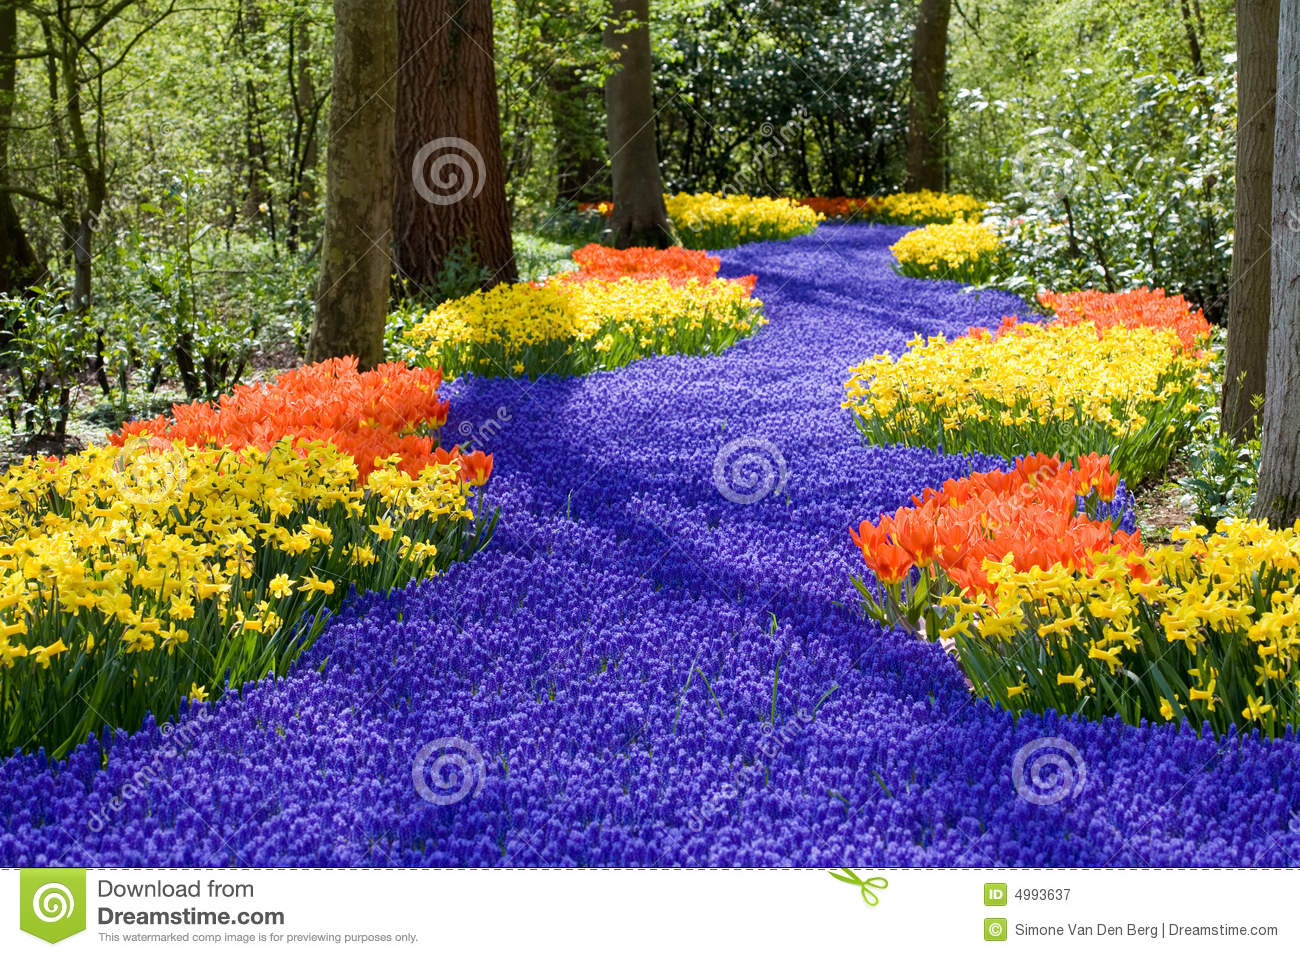 Free images spring flowers banner royalty free Spring Flowers Stock Photos, Images, & Pictures - 694,949 Images banner royalty free